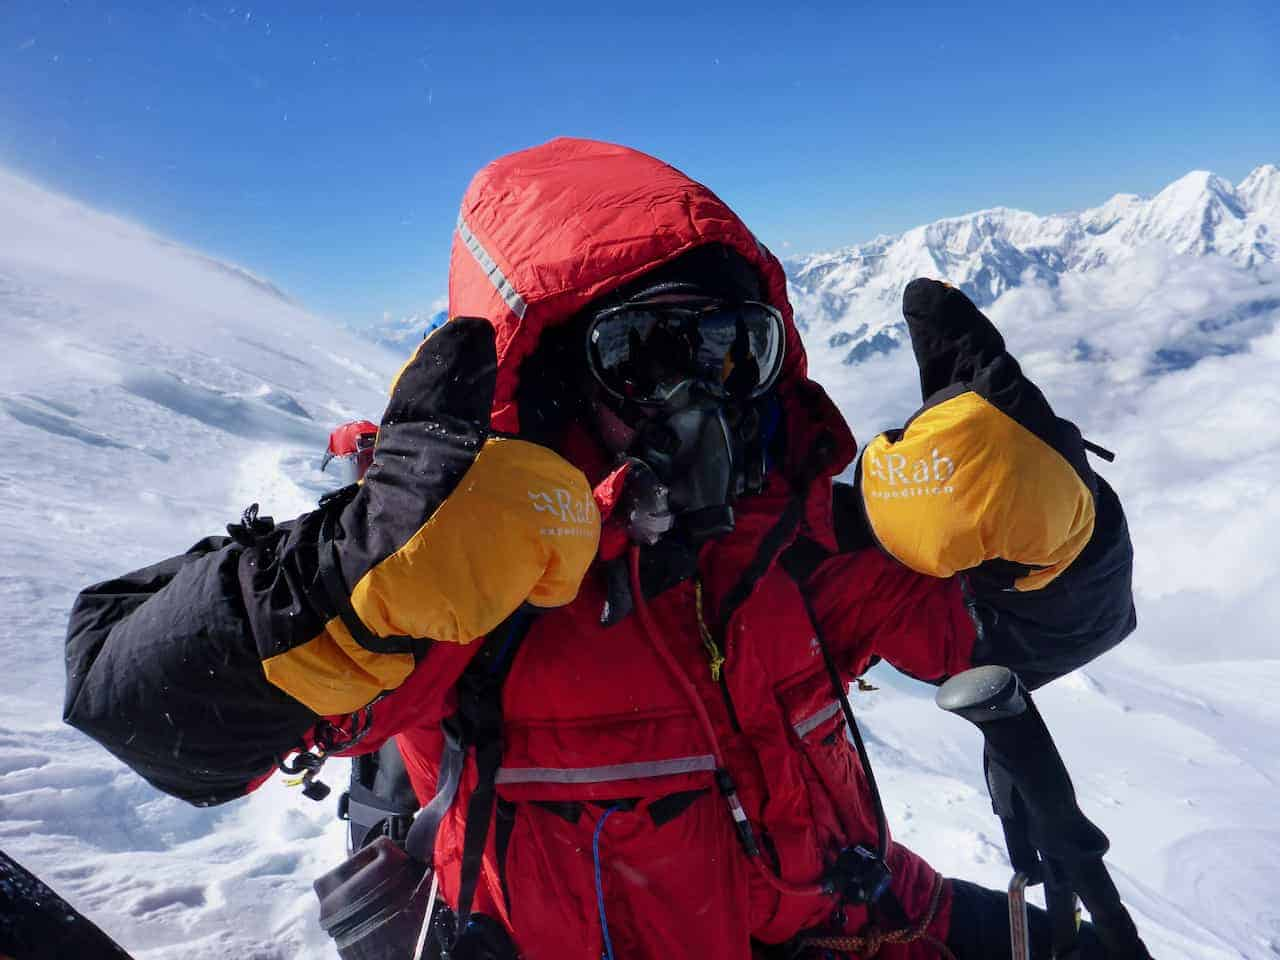 A man on a high altitude and remote expedition in Nepal climbing Manaslu